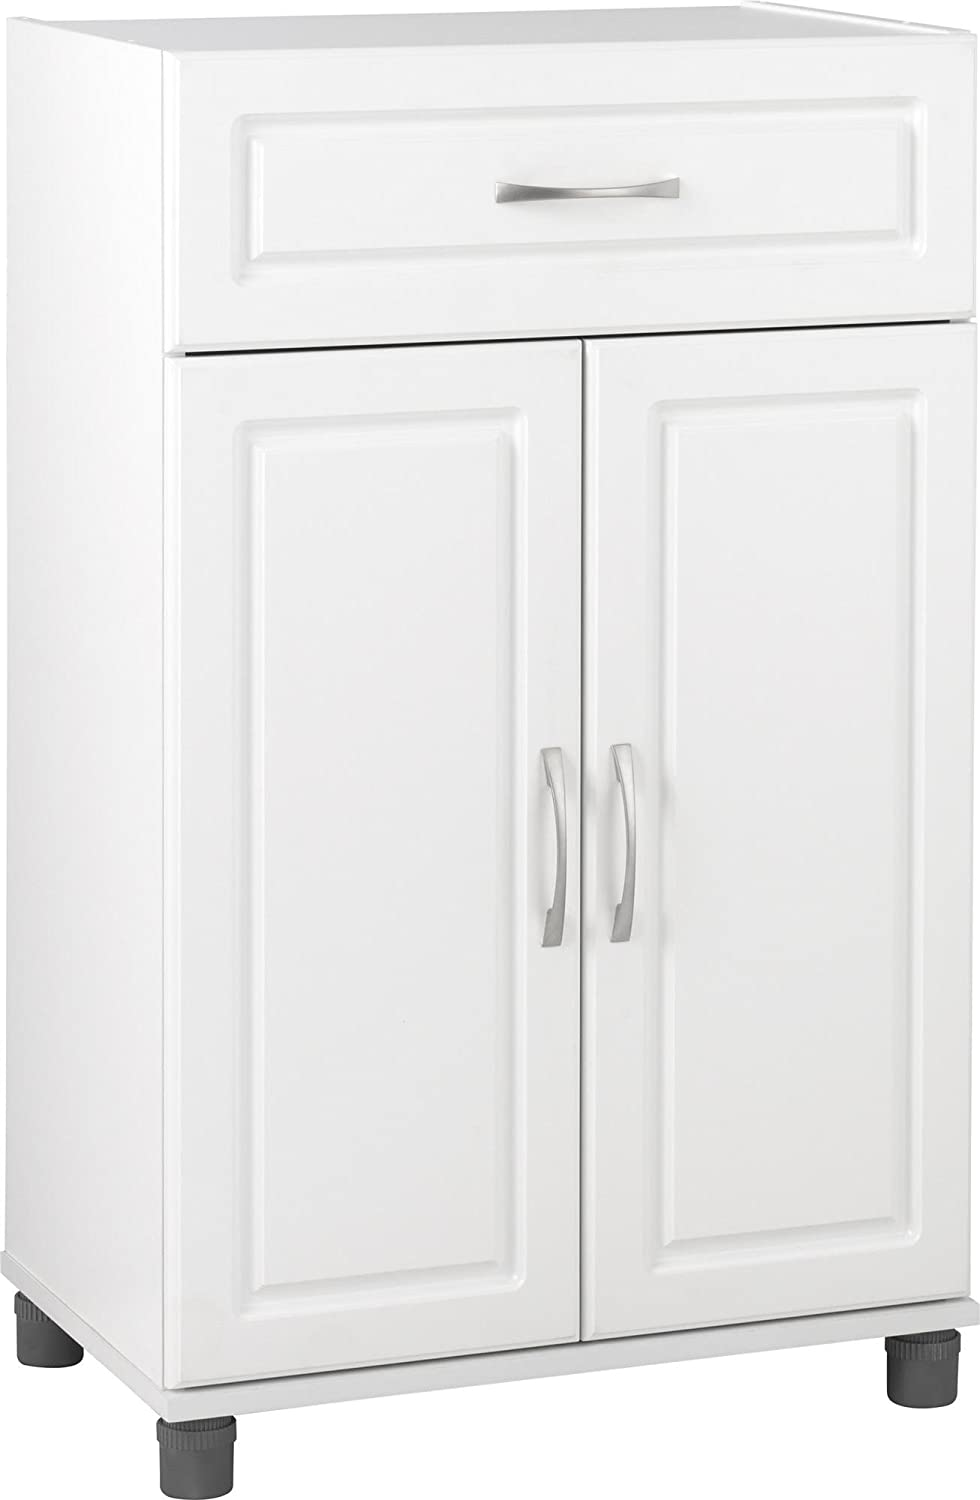 Amazon.com Ameriwood SystemBuild Kendall 24  1 Drawer/2 Door Base Storage Cabinet (White) Kitchen u0026 Dining  sc 1 st  Amazon.com : 2 doors - Pezcame.Com